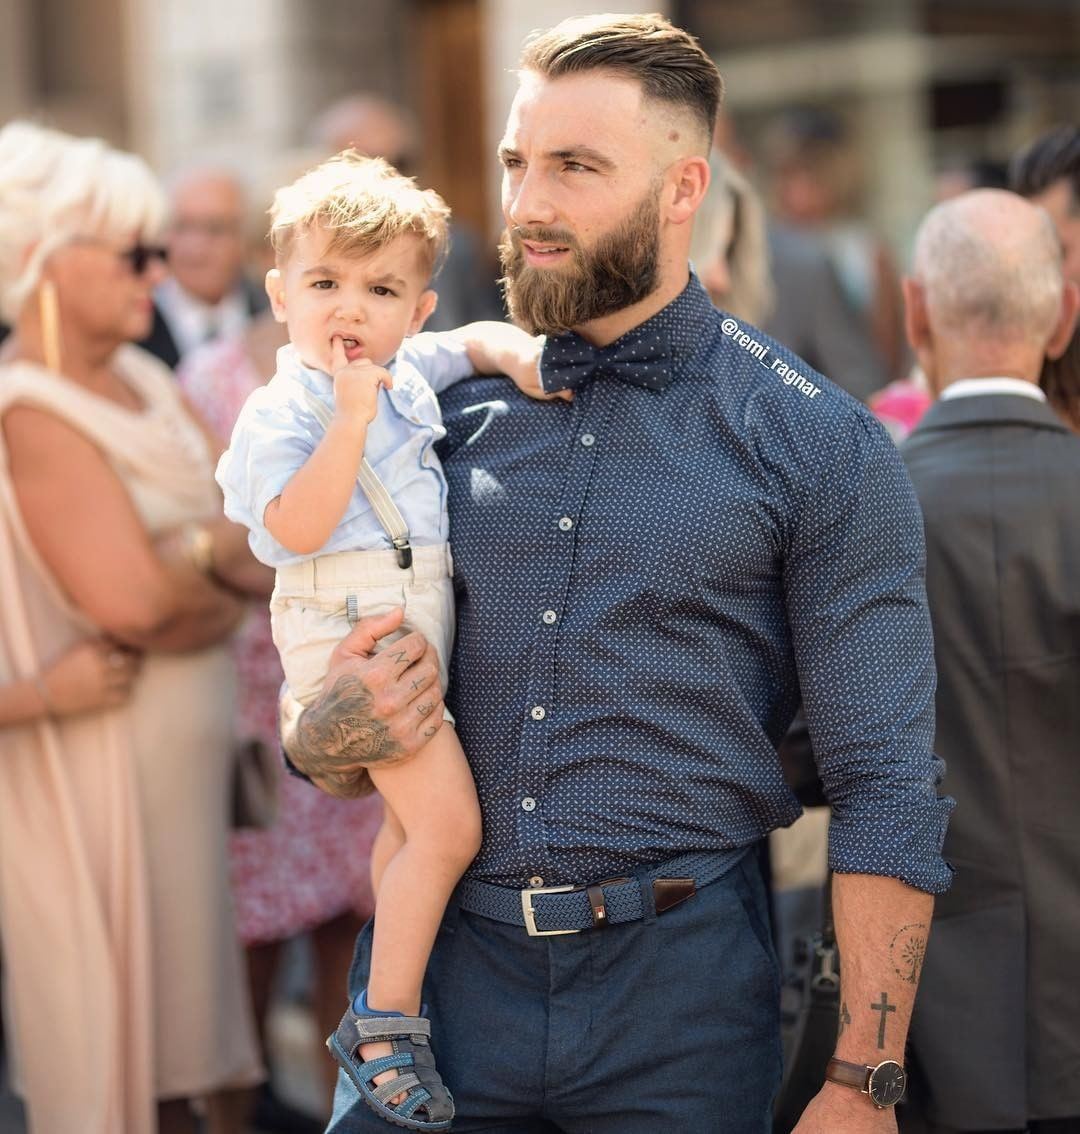 Bearded dads ❤️ Click link at bio @beardsaresexy to be featured.™ Check out our Apparel @Beardsaresexyshop™ www.beardsaresexy.com #beardsaresexy#beard#beards Model: @remi_ragnar